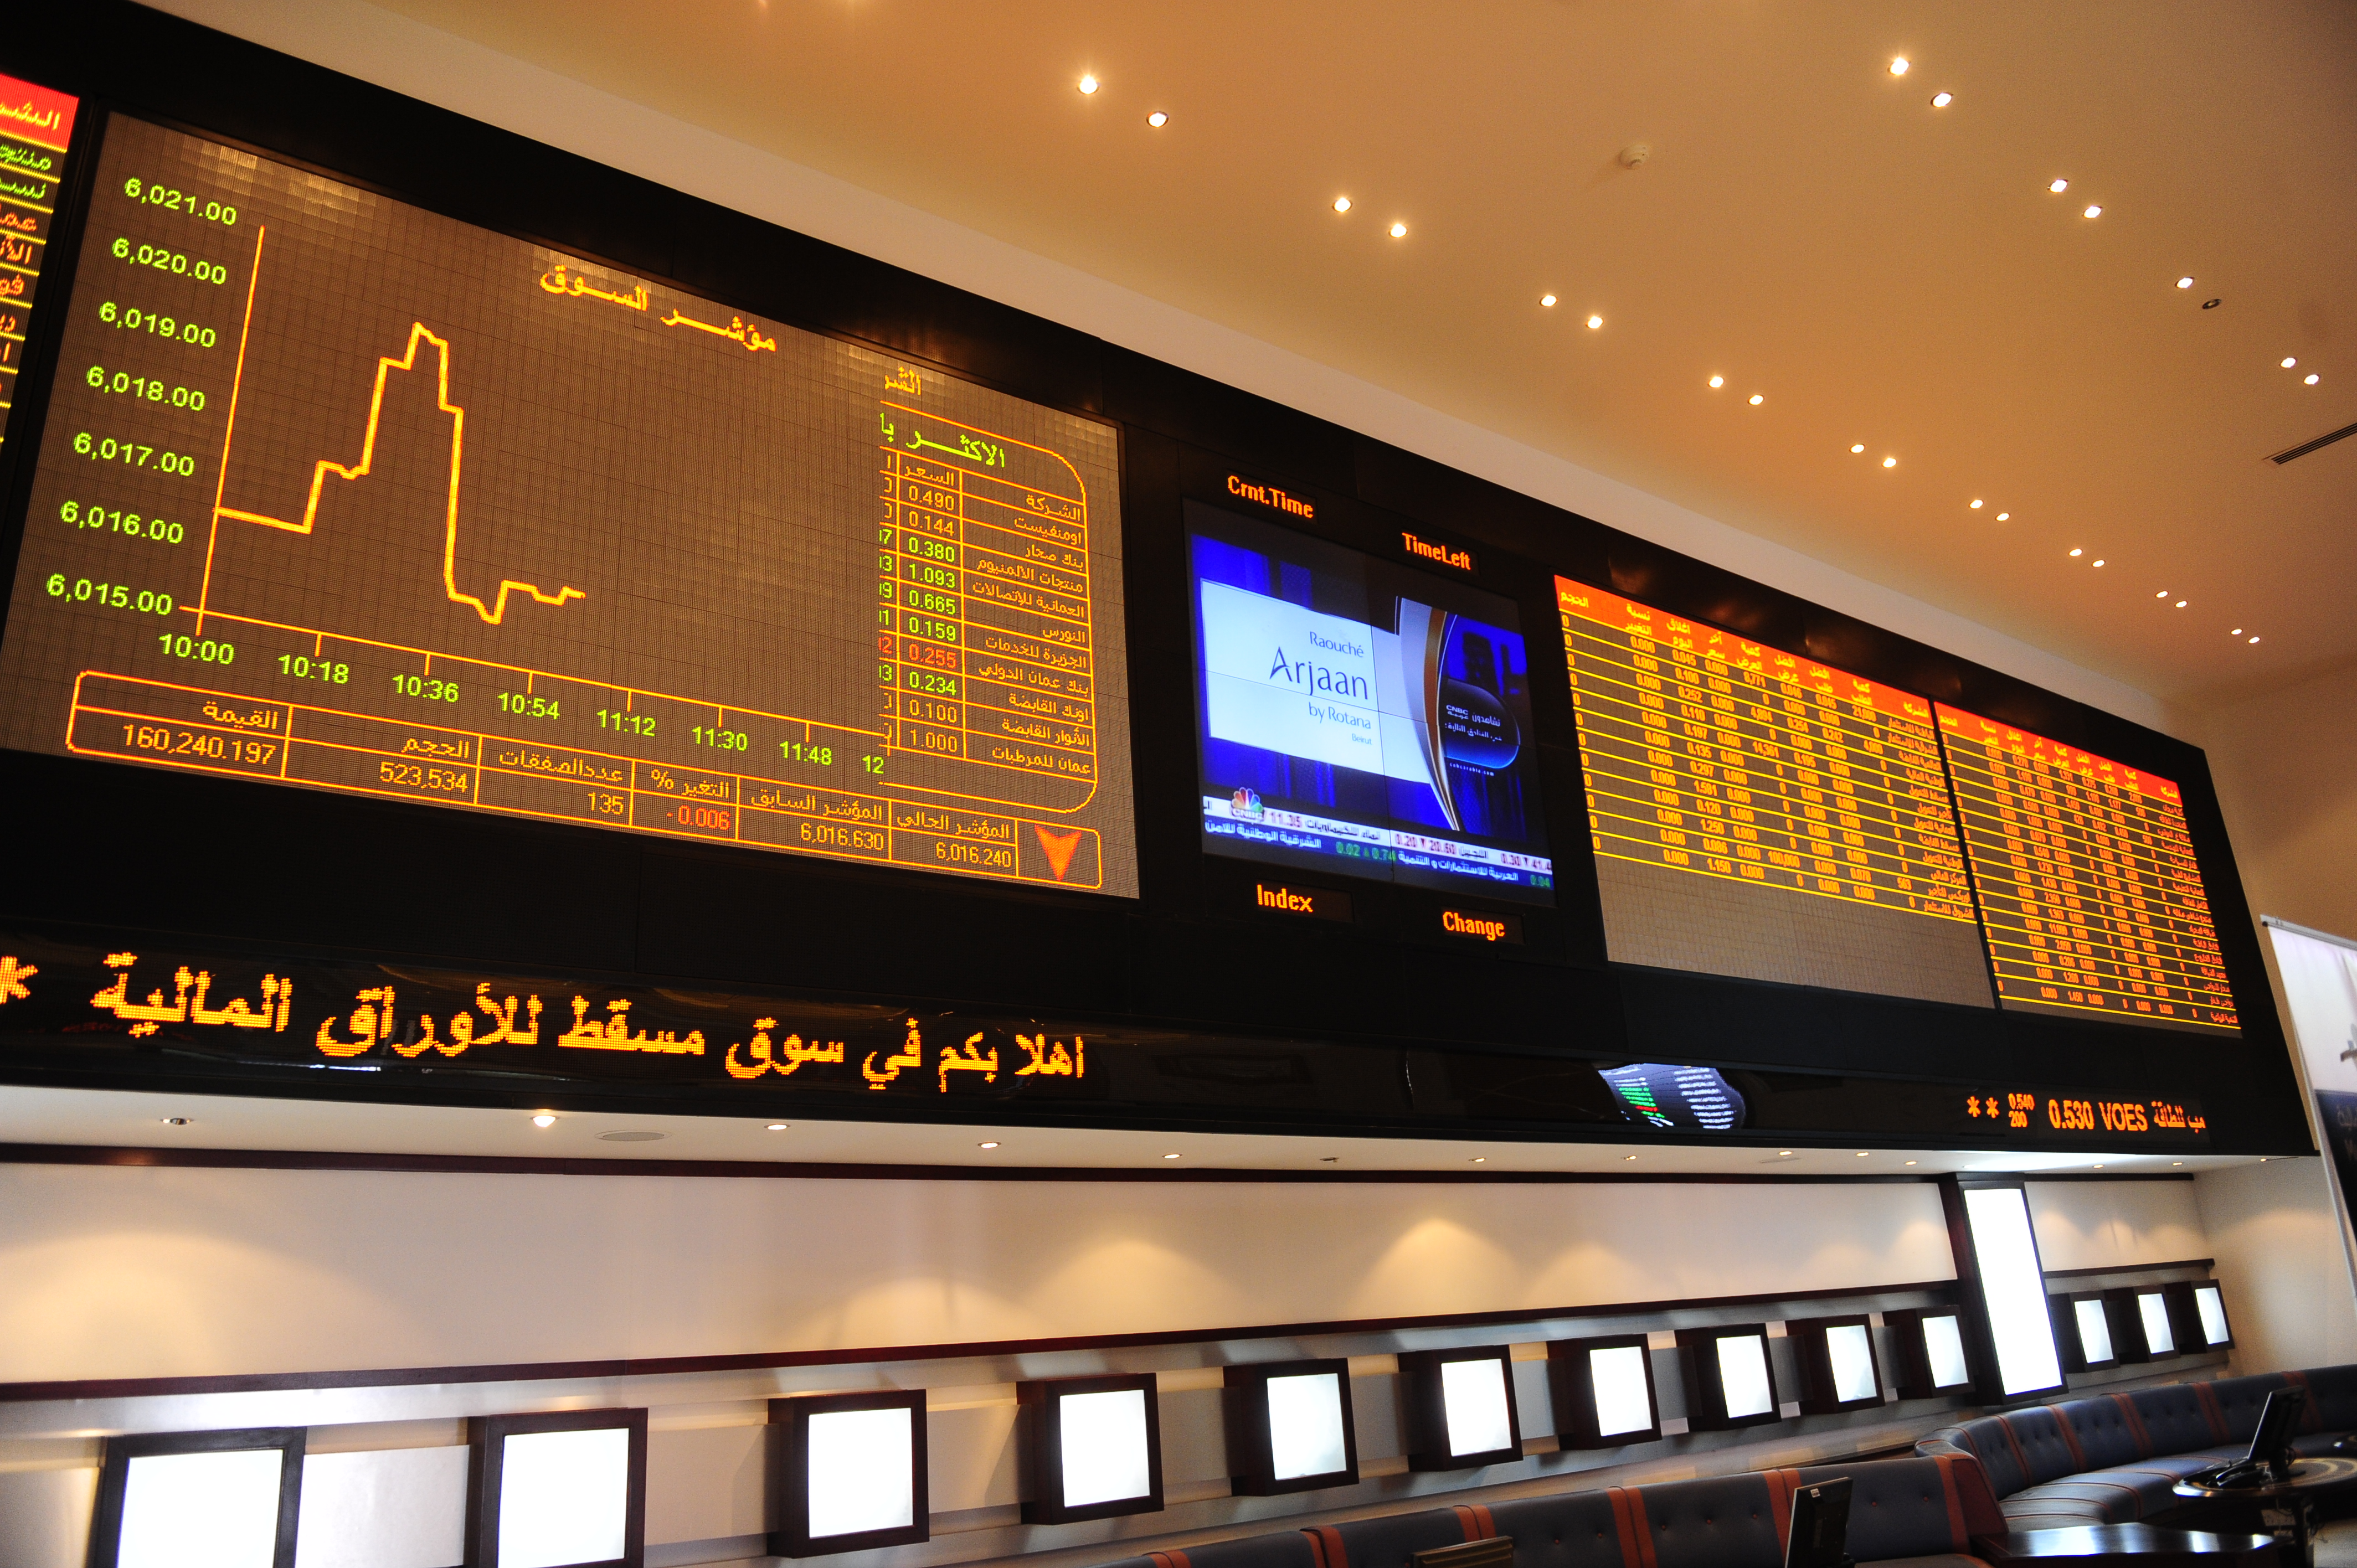 Shares decline on Muscat bourse